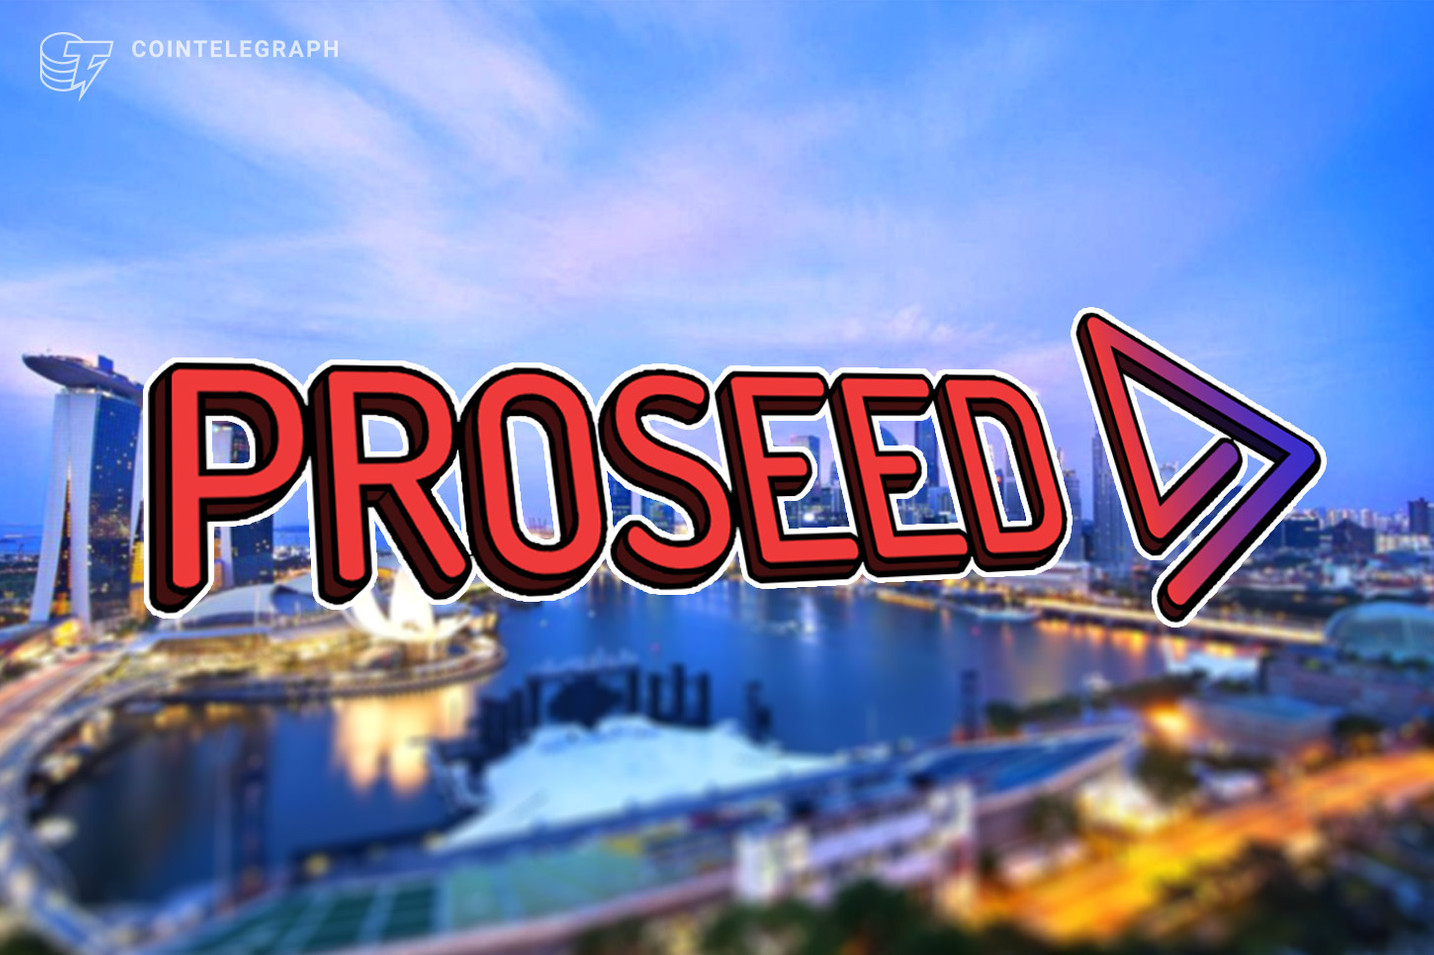 ProSeed Asia Roadshow: Bringing Together Top Investors and Innovators